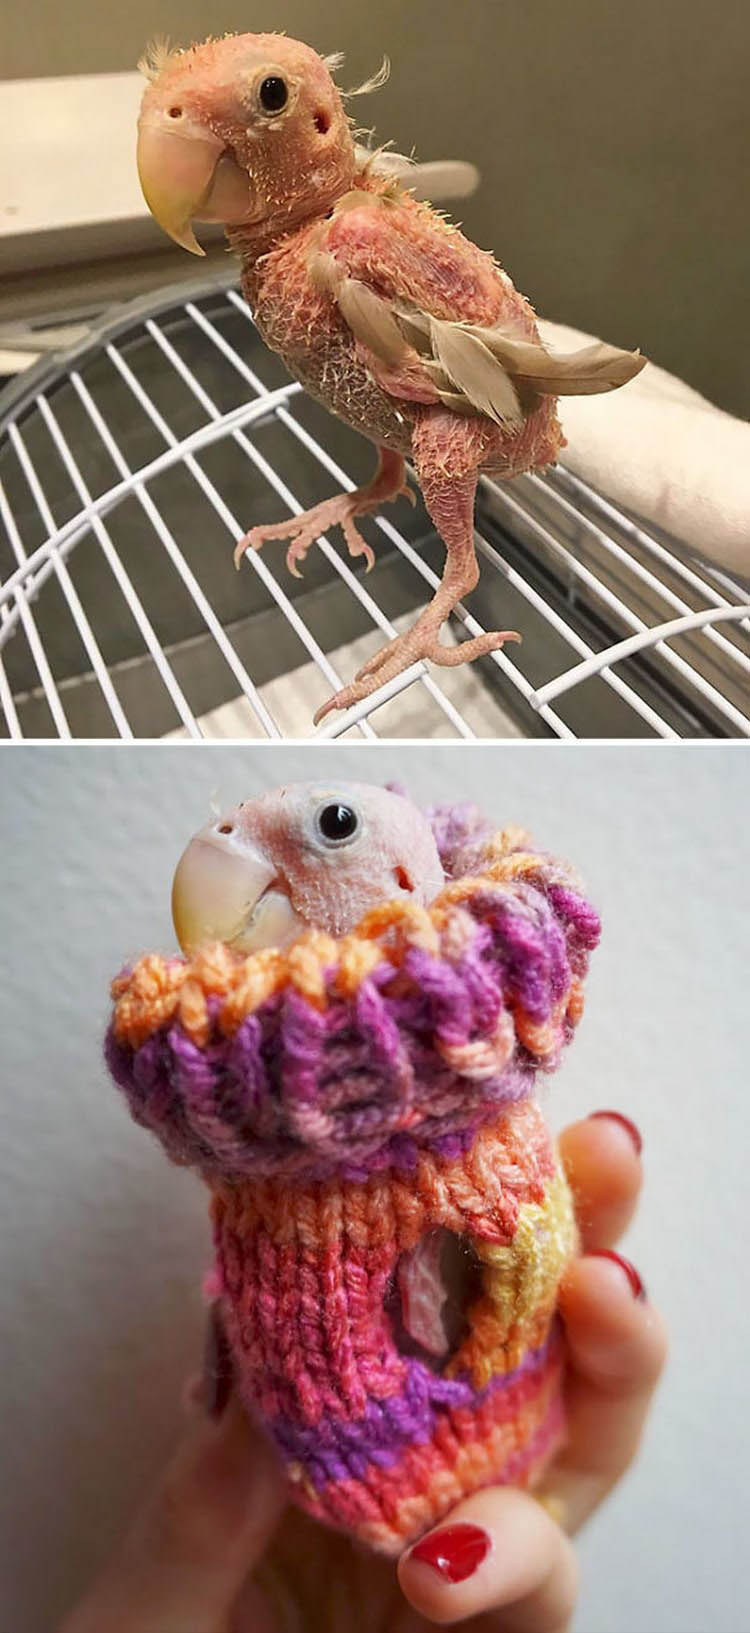 cute-animals-wearing-tiny-sweaters-vinegret-20